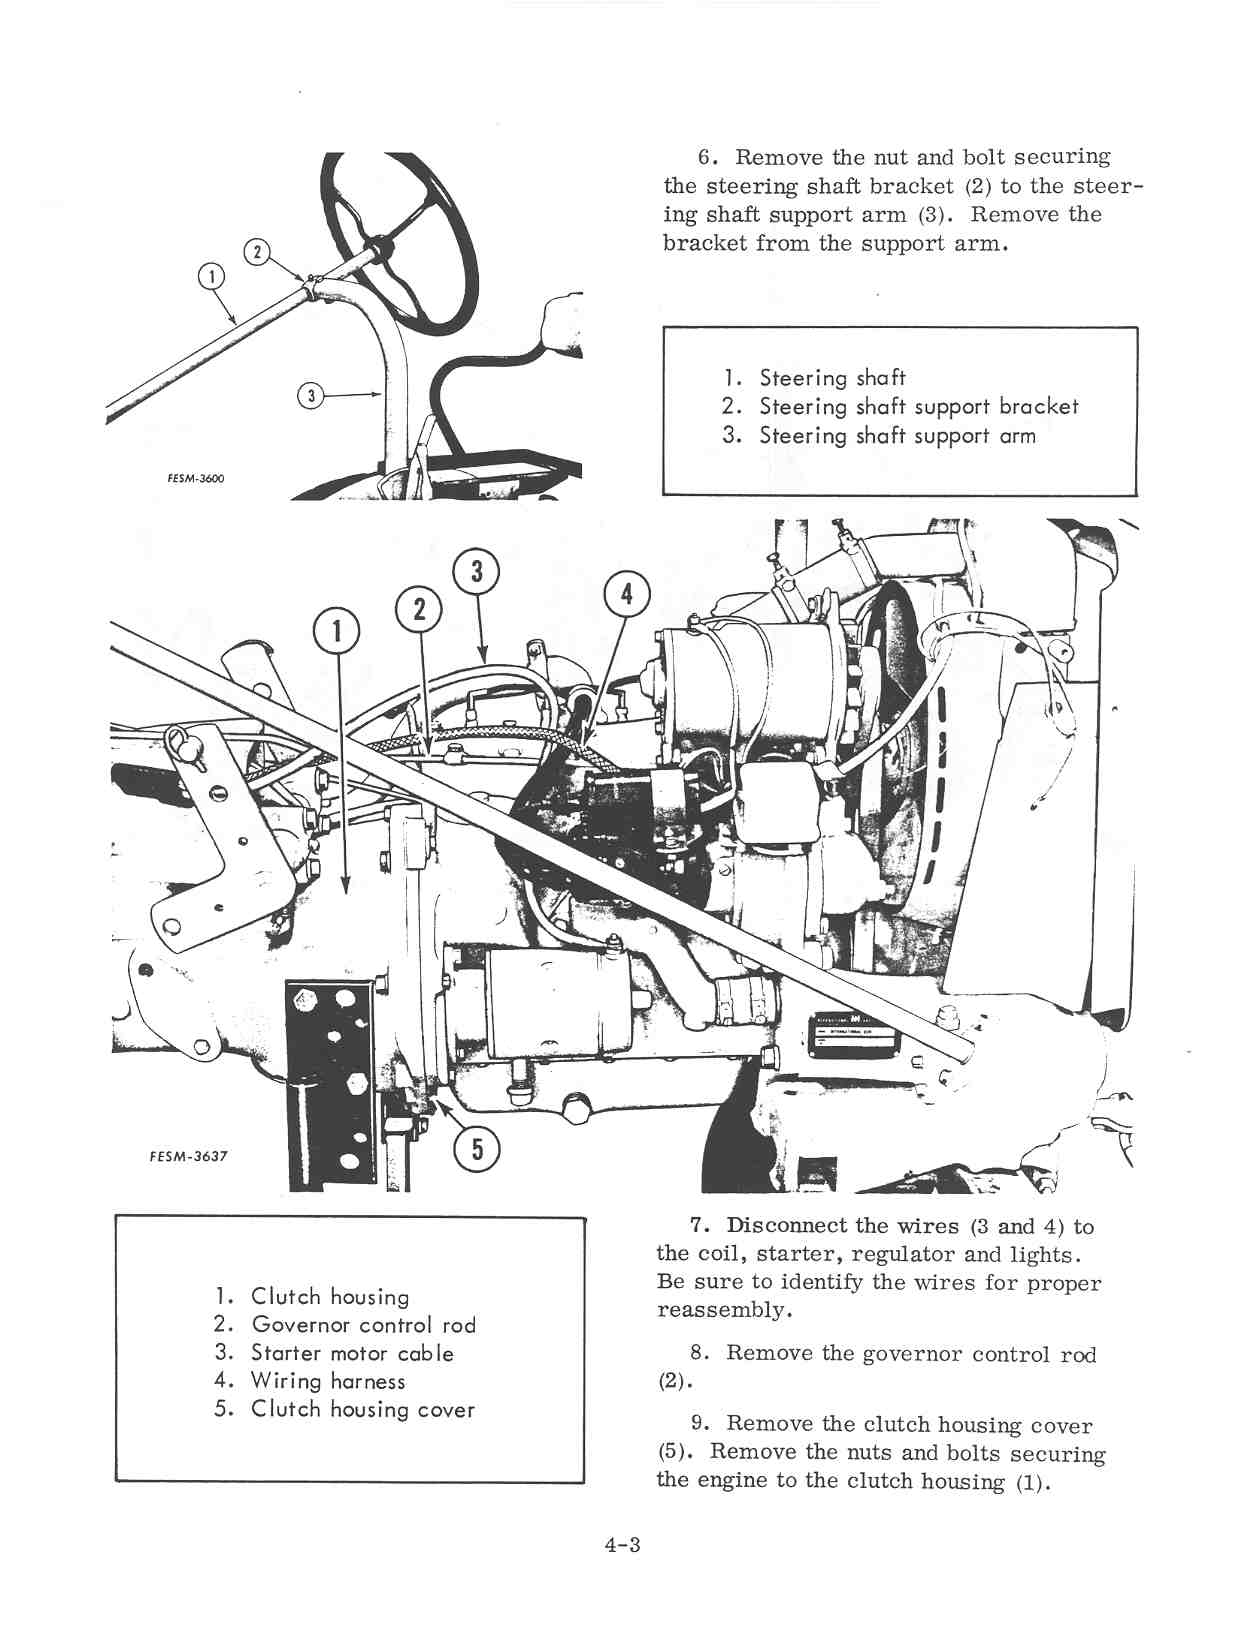 Section 4 Splitting And Recoupling The Tractor Farmall Cub Wiring Harness Page 04 01